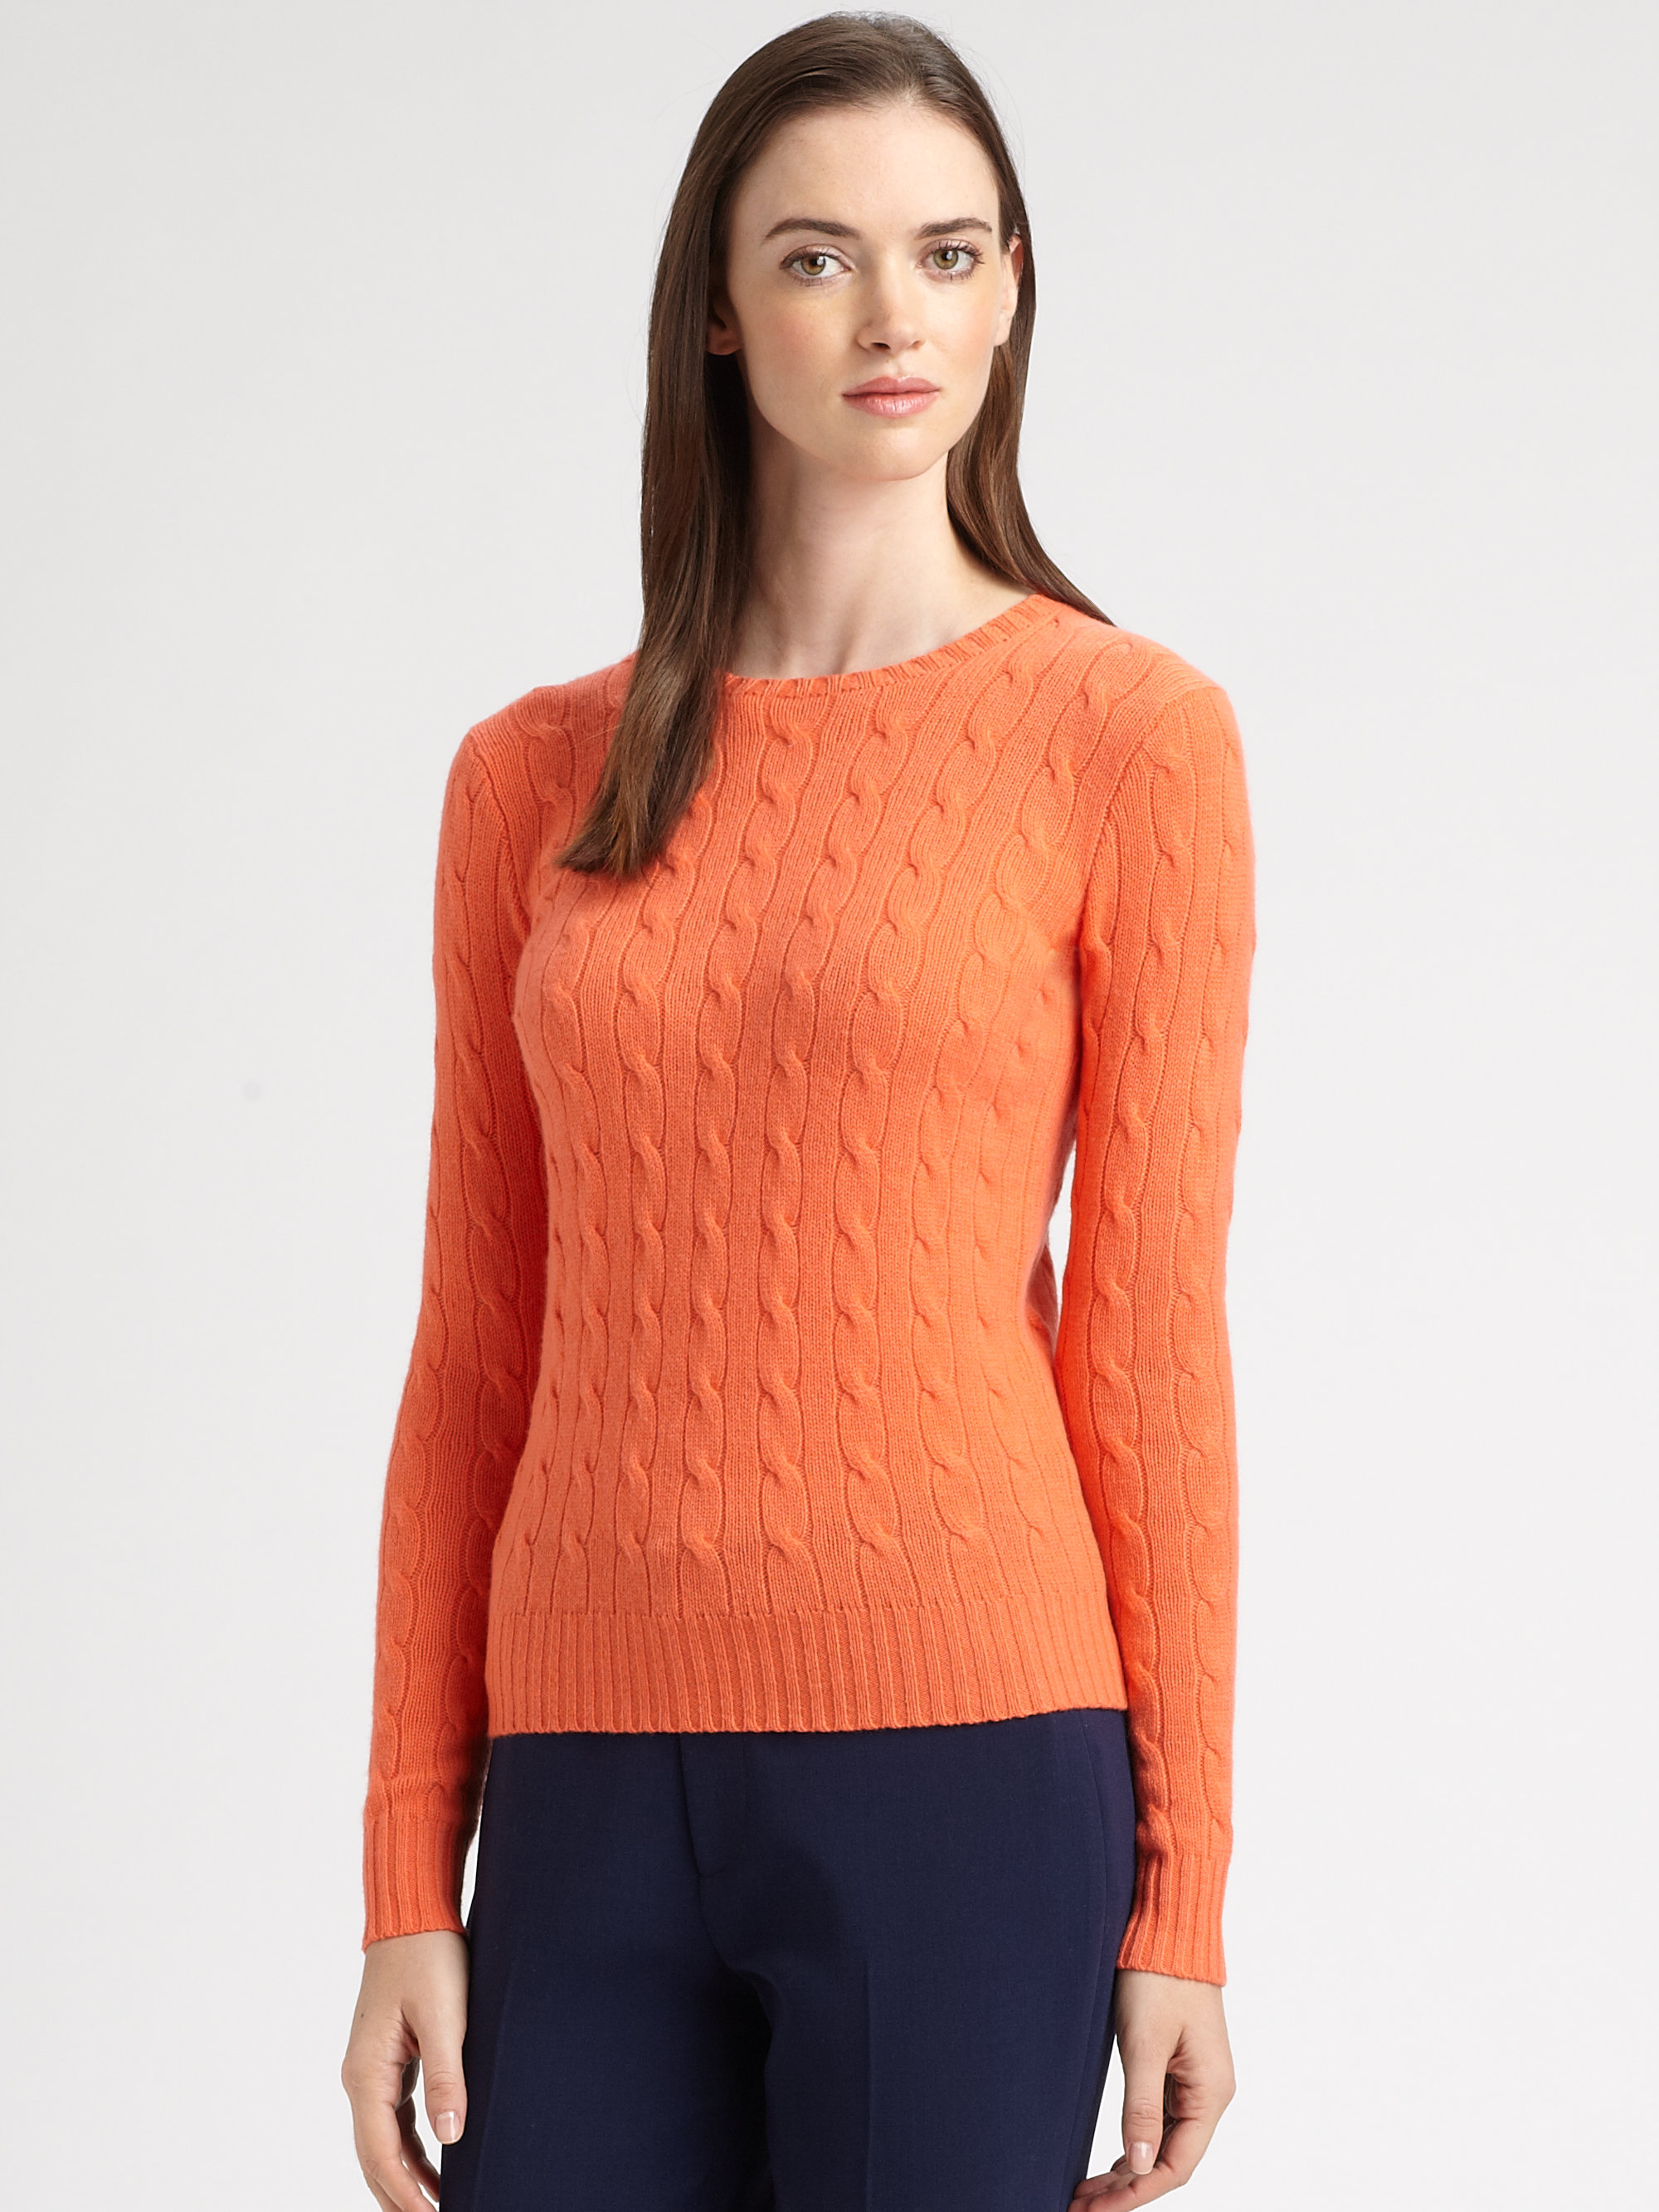 Ralph lauren black label Cashmere Cableknit Crewneck Sweater in ...